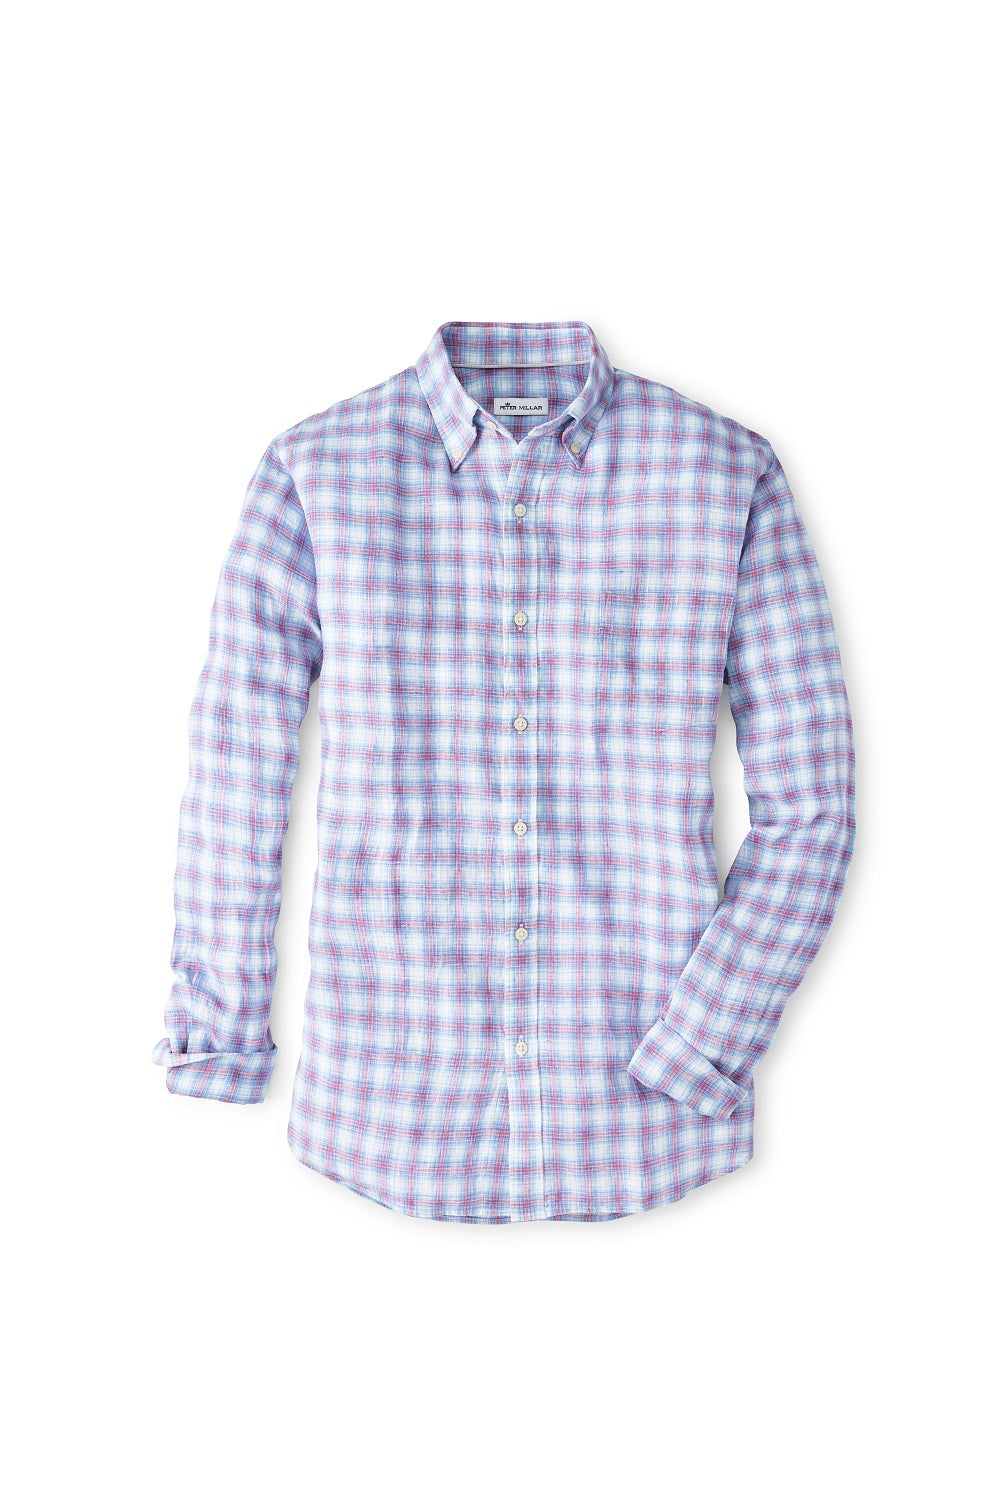 Peter Millar Summer Bay Linen Sport Shirt